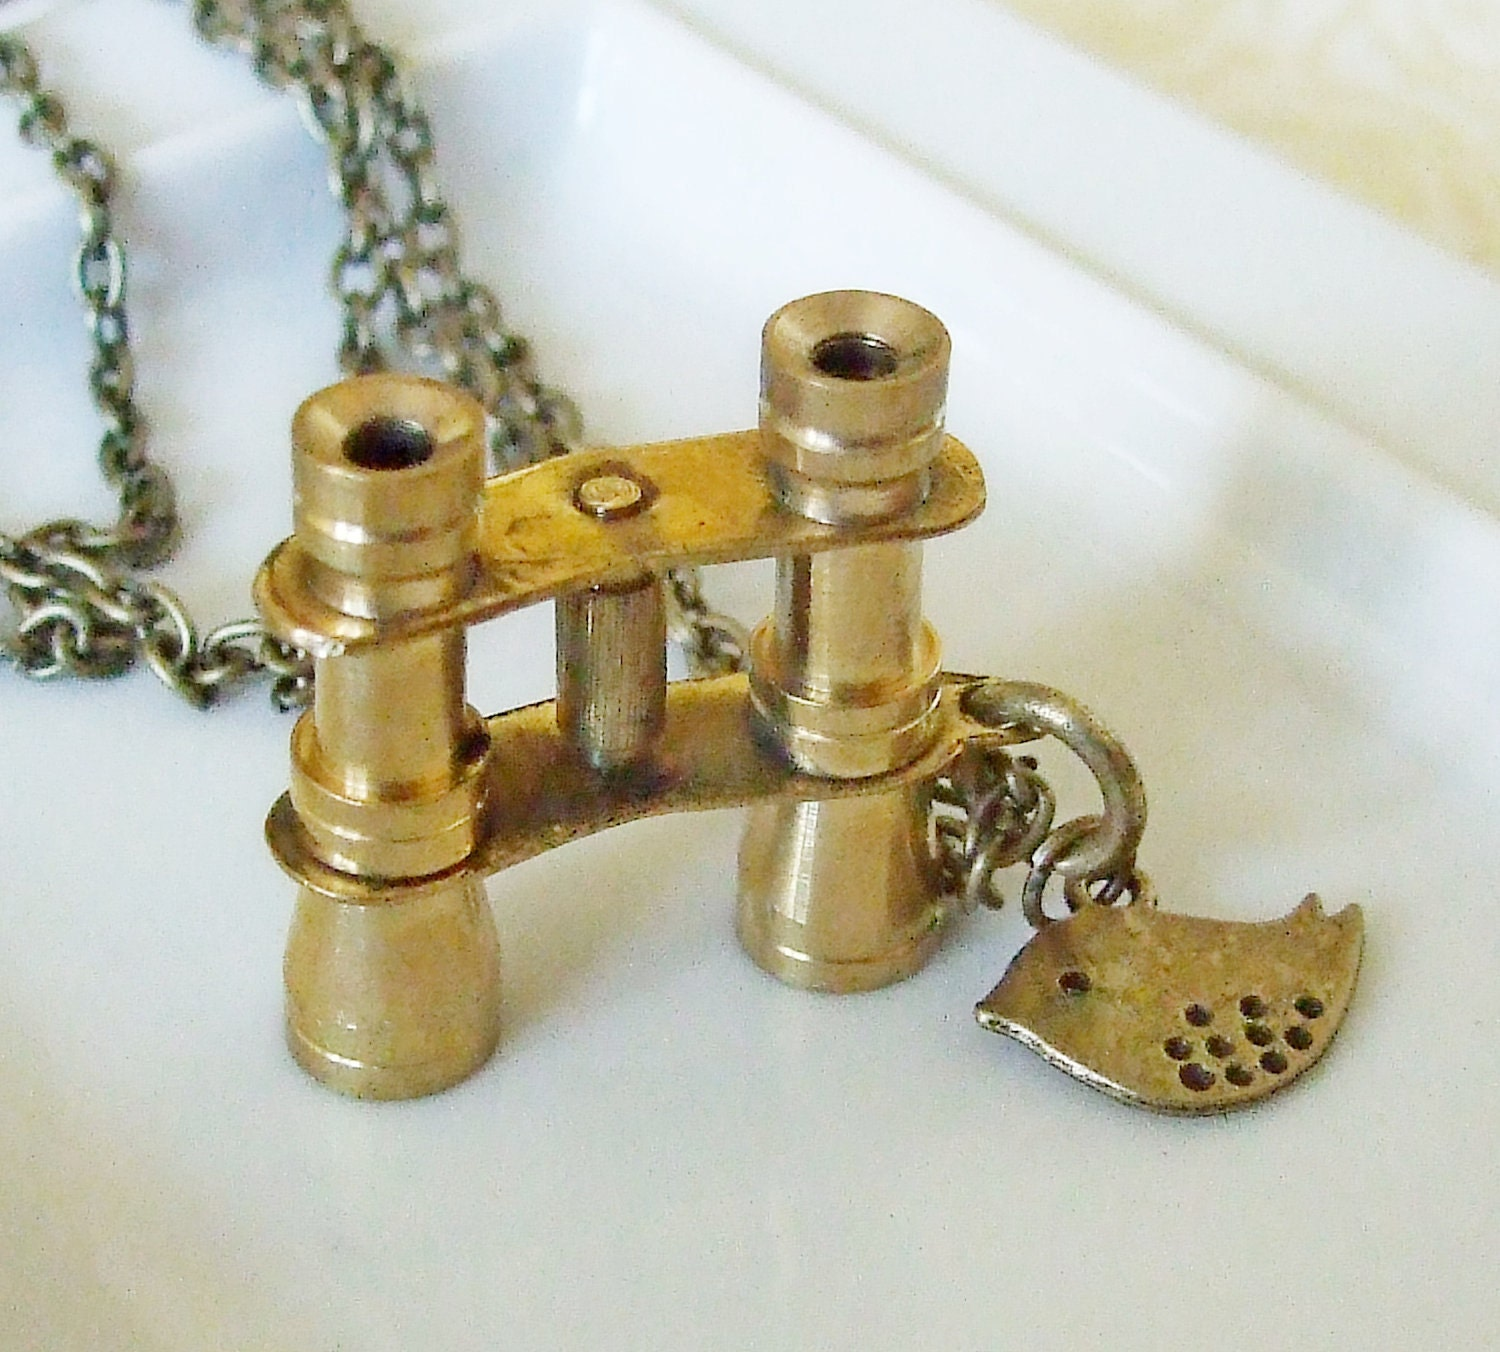 Binoculars Necklace .. bird watching, binoculars, twitcher, bird necklace, pendant, bird charm, hobby, necklace, brass - beadishdelight